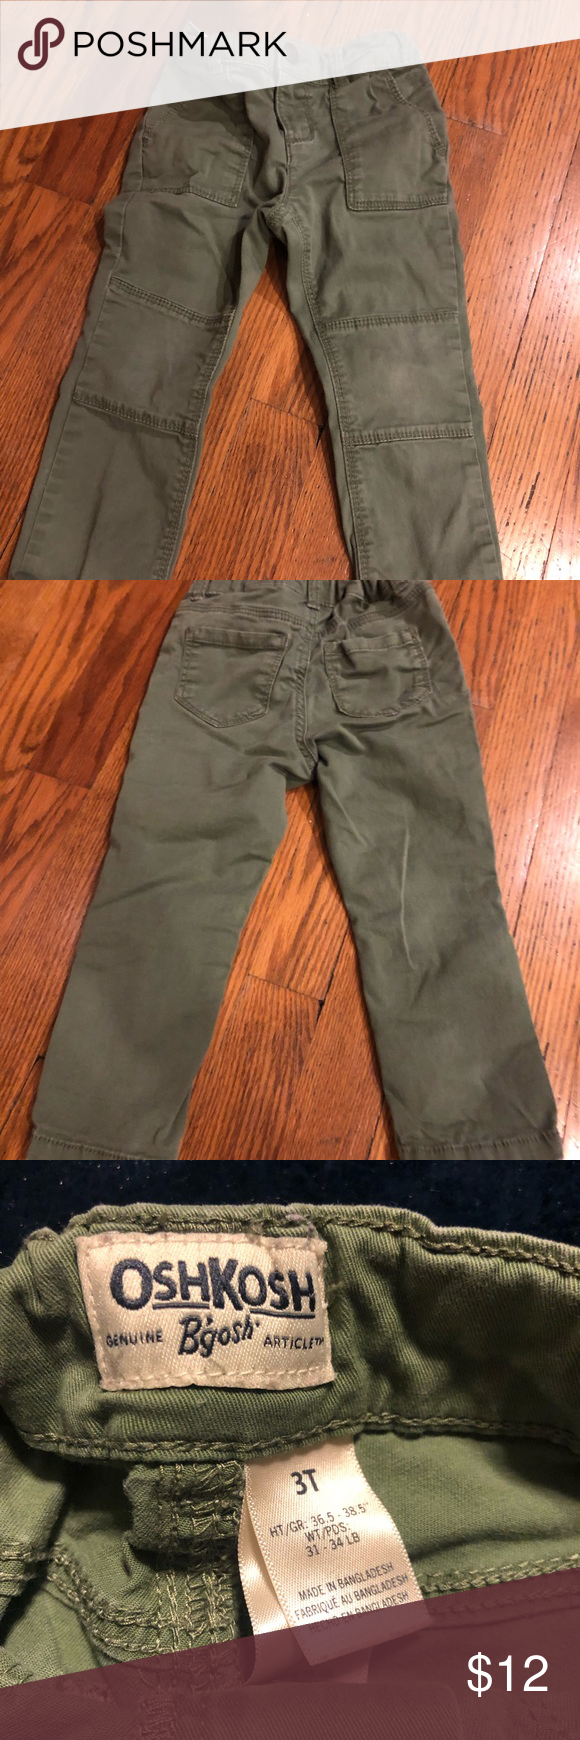 Cargo Skinnies! Adorable cargo style skinny cotton pants